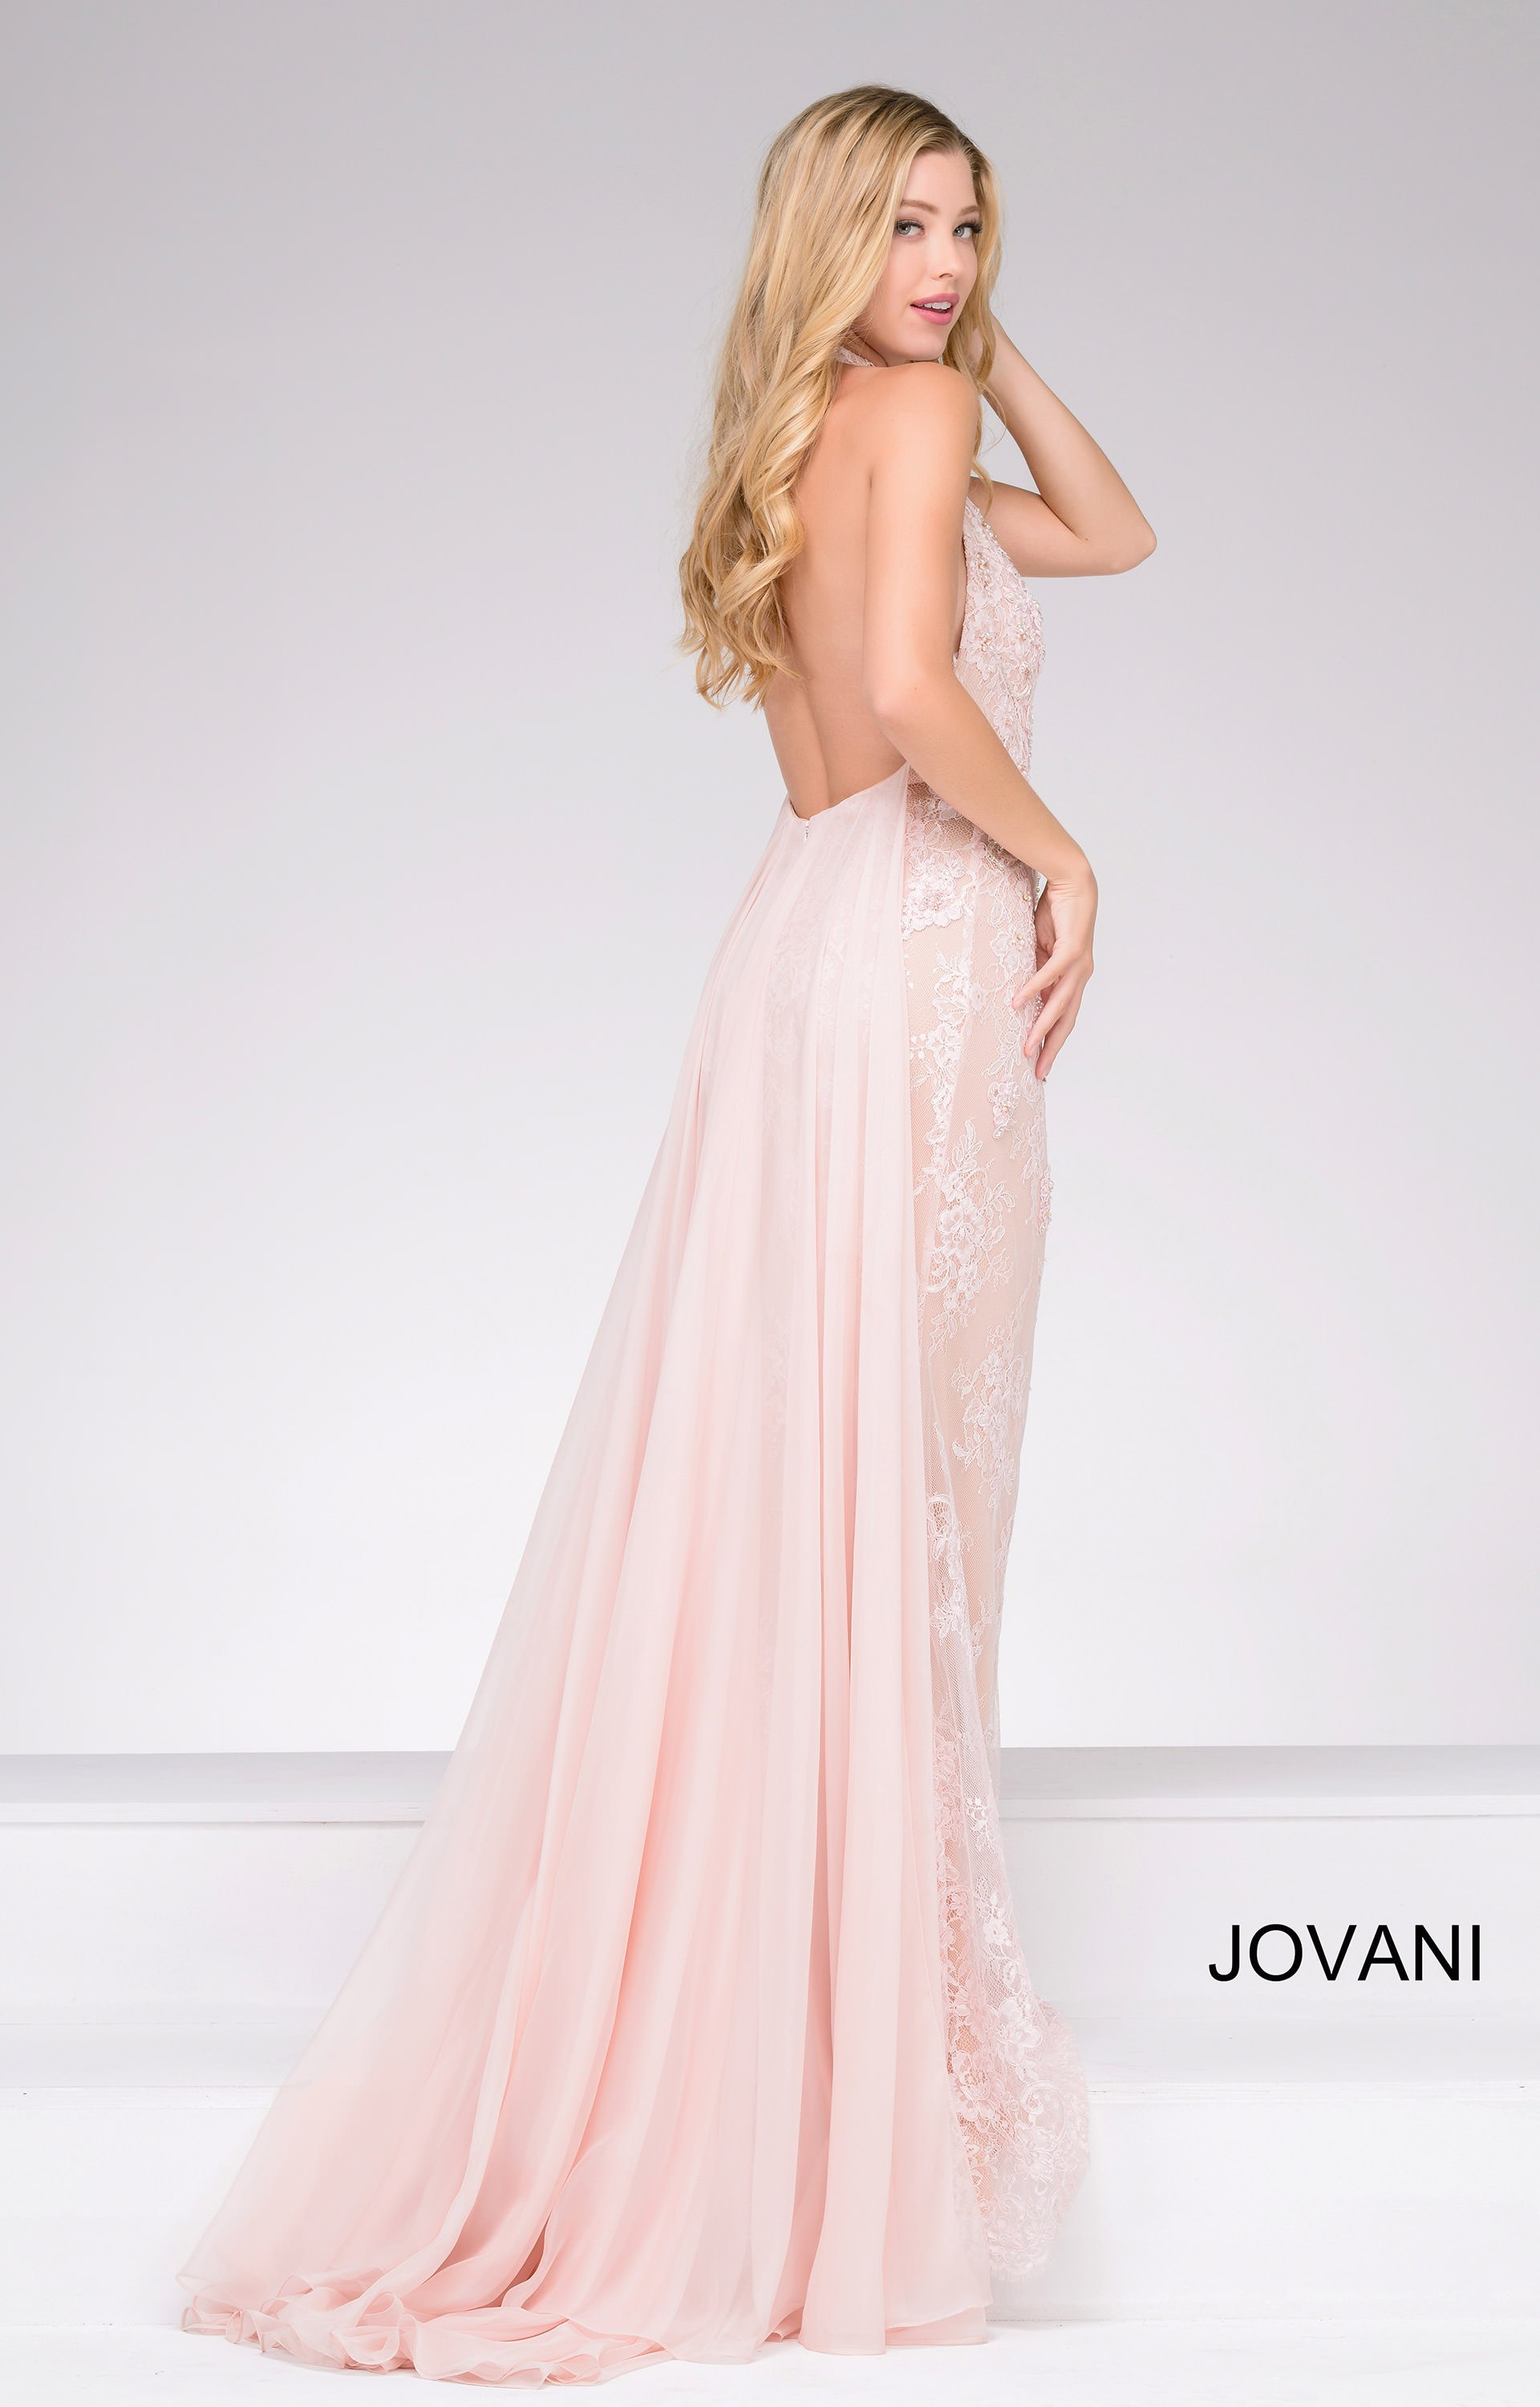 Jovani 45727 Completely Lace Halter Dress With An Open